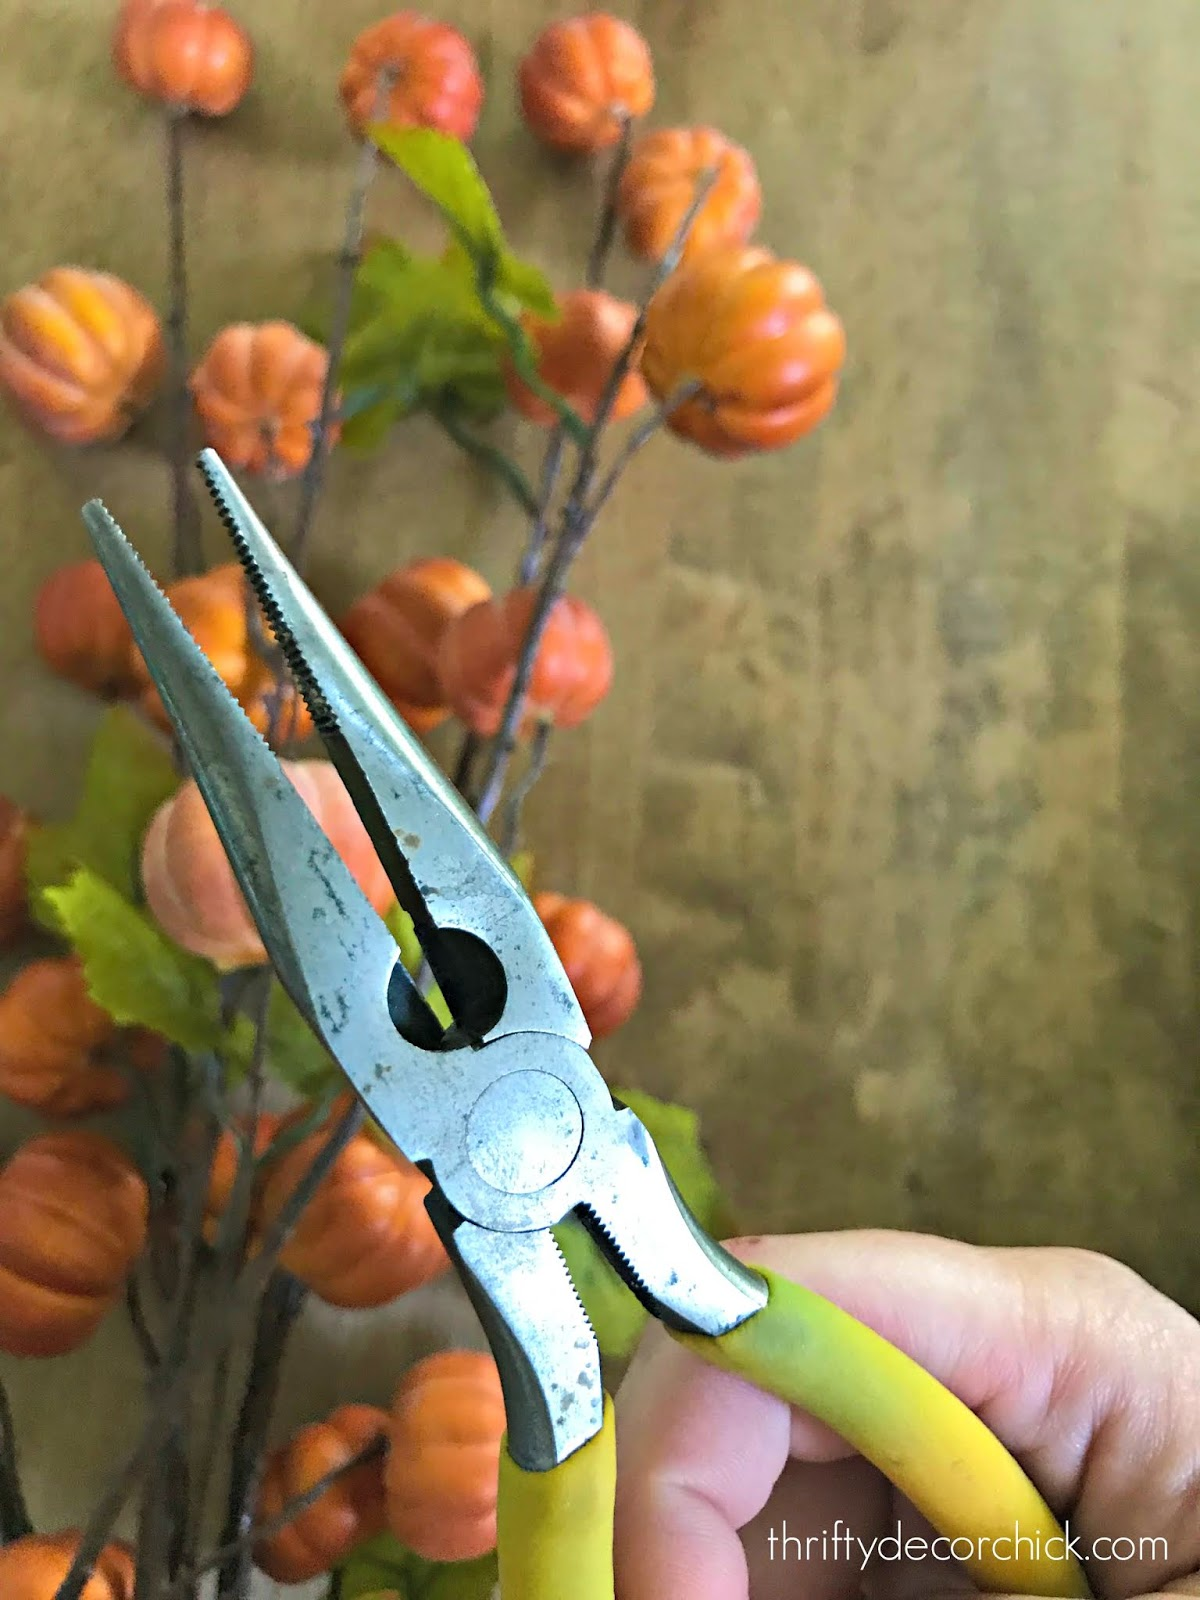 Pliers for cutting down fake flowers